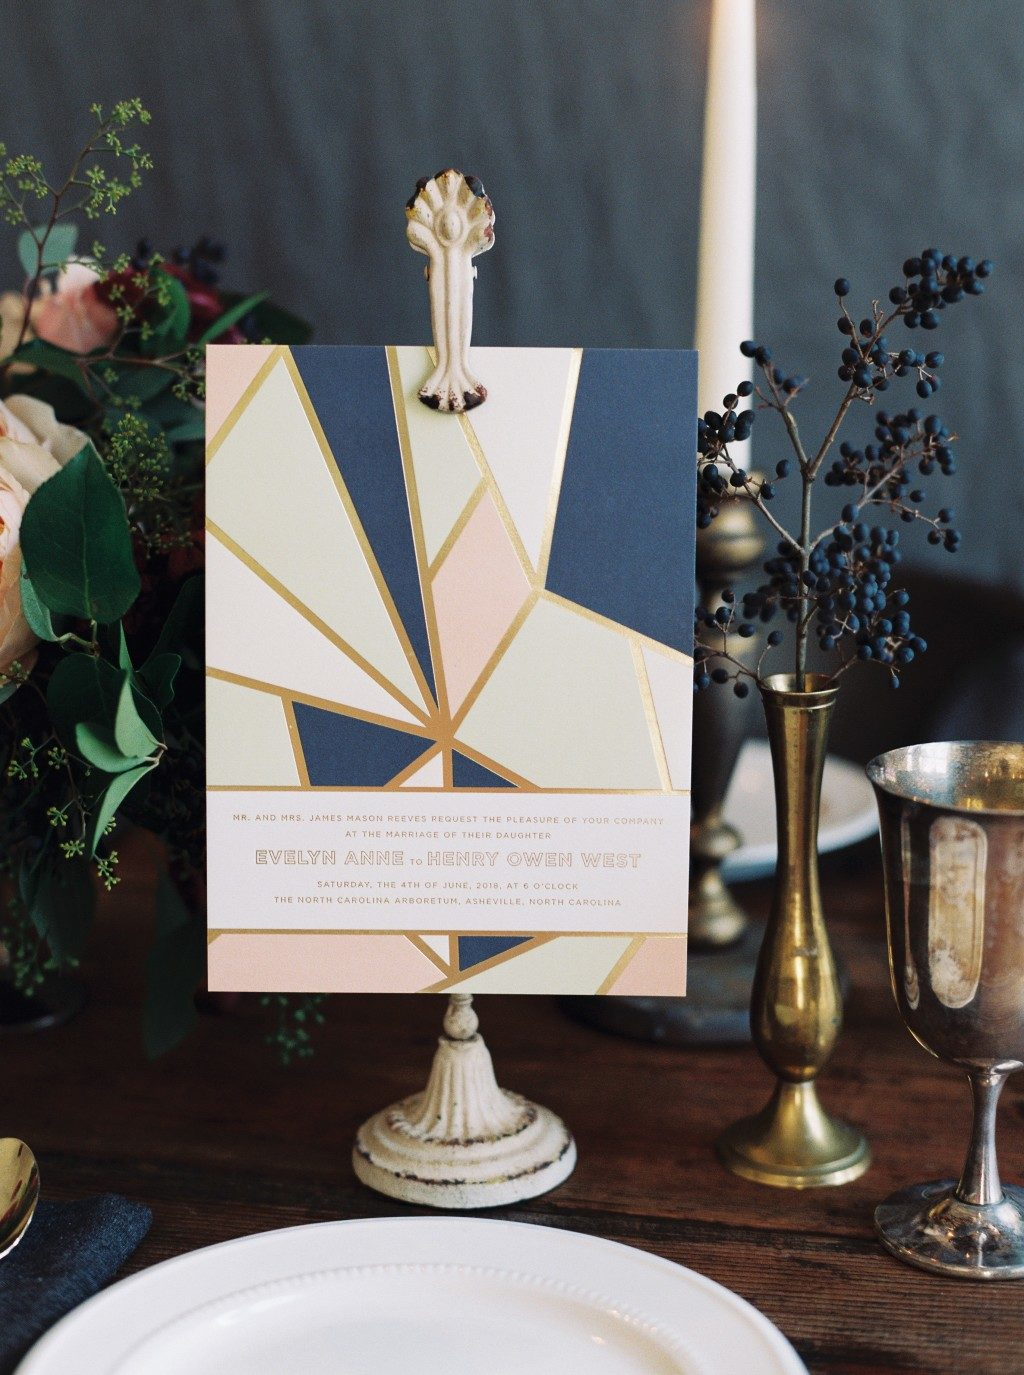 Briolette wedding invitations by Ellie Snow for Bella Figura